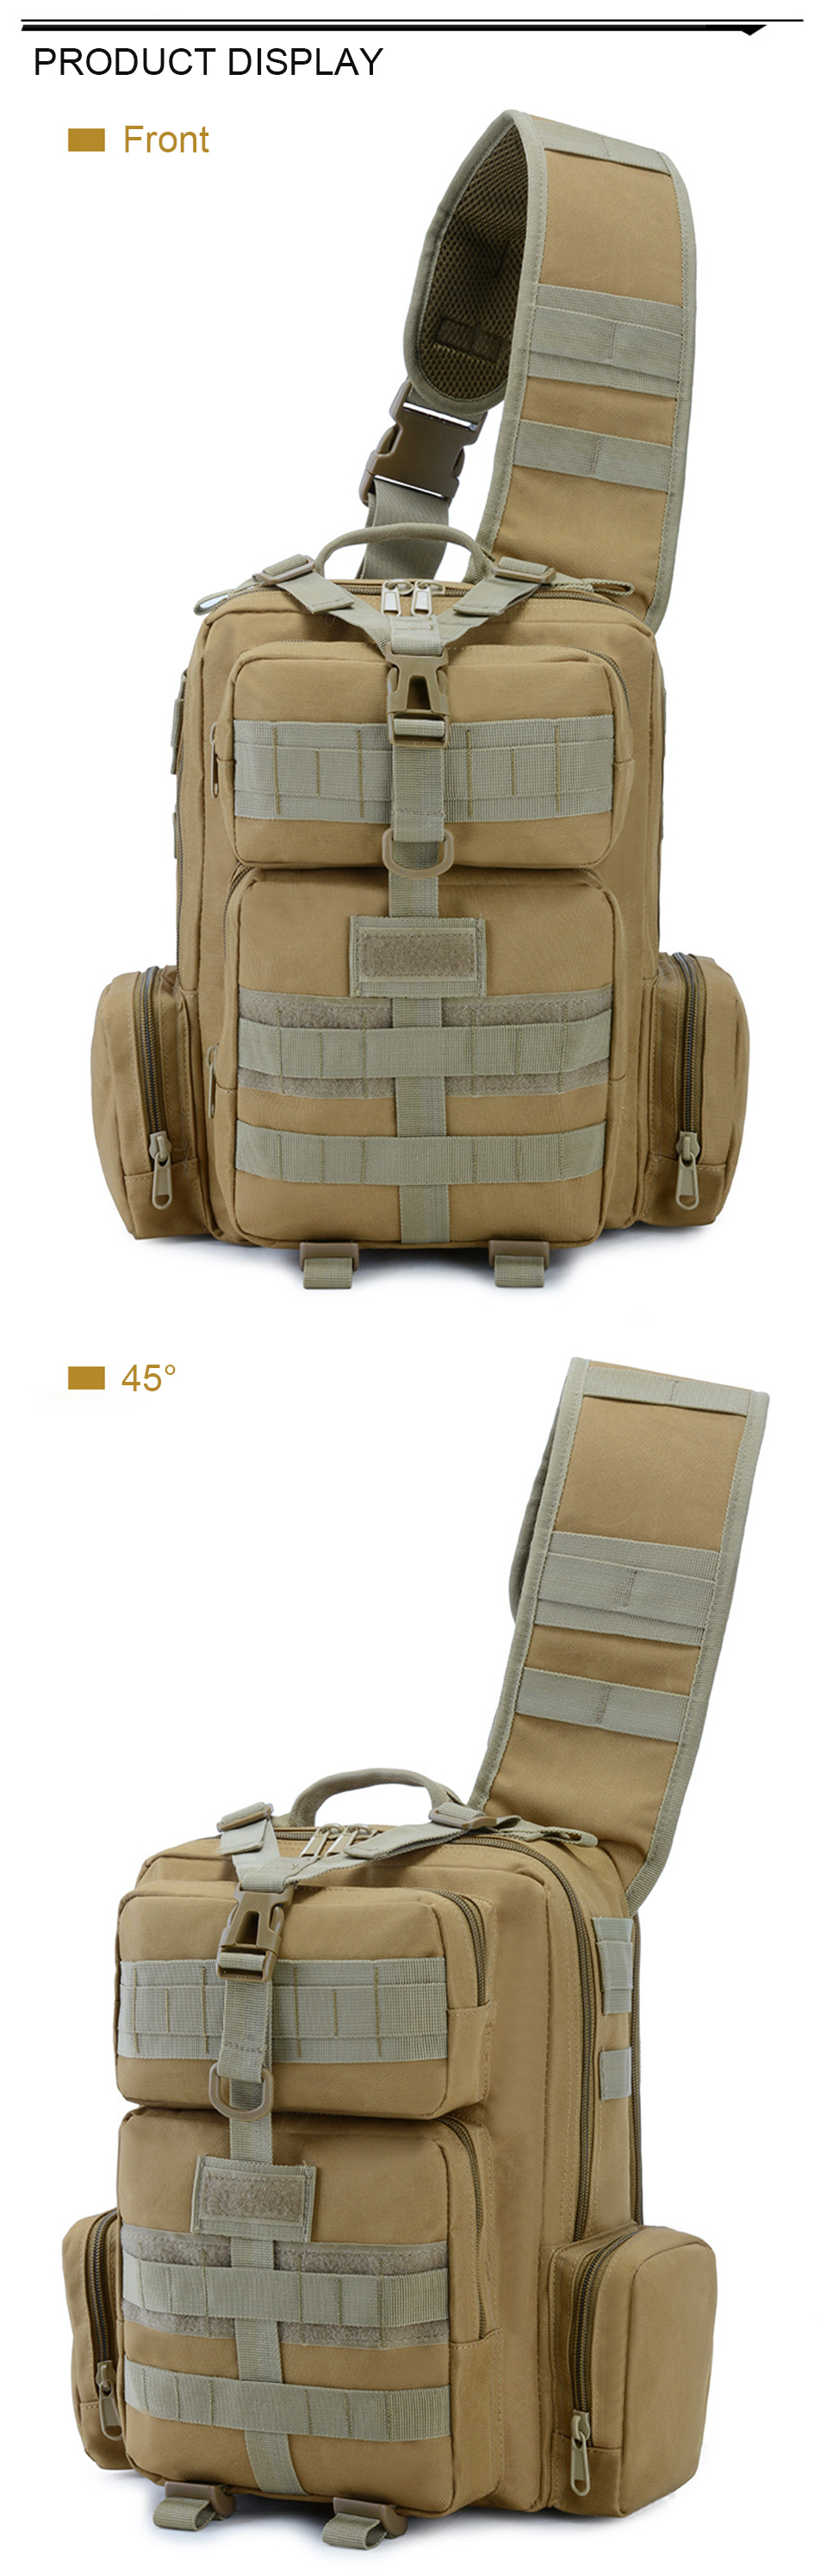 Outdoor-Sports-Military-Bag-Tactical-Bags-Climbing-Shoulder-Bag-Camping-Hiking-Hunting-Chest-Daypack-Molle-Camouflage-Backpack_08